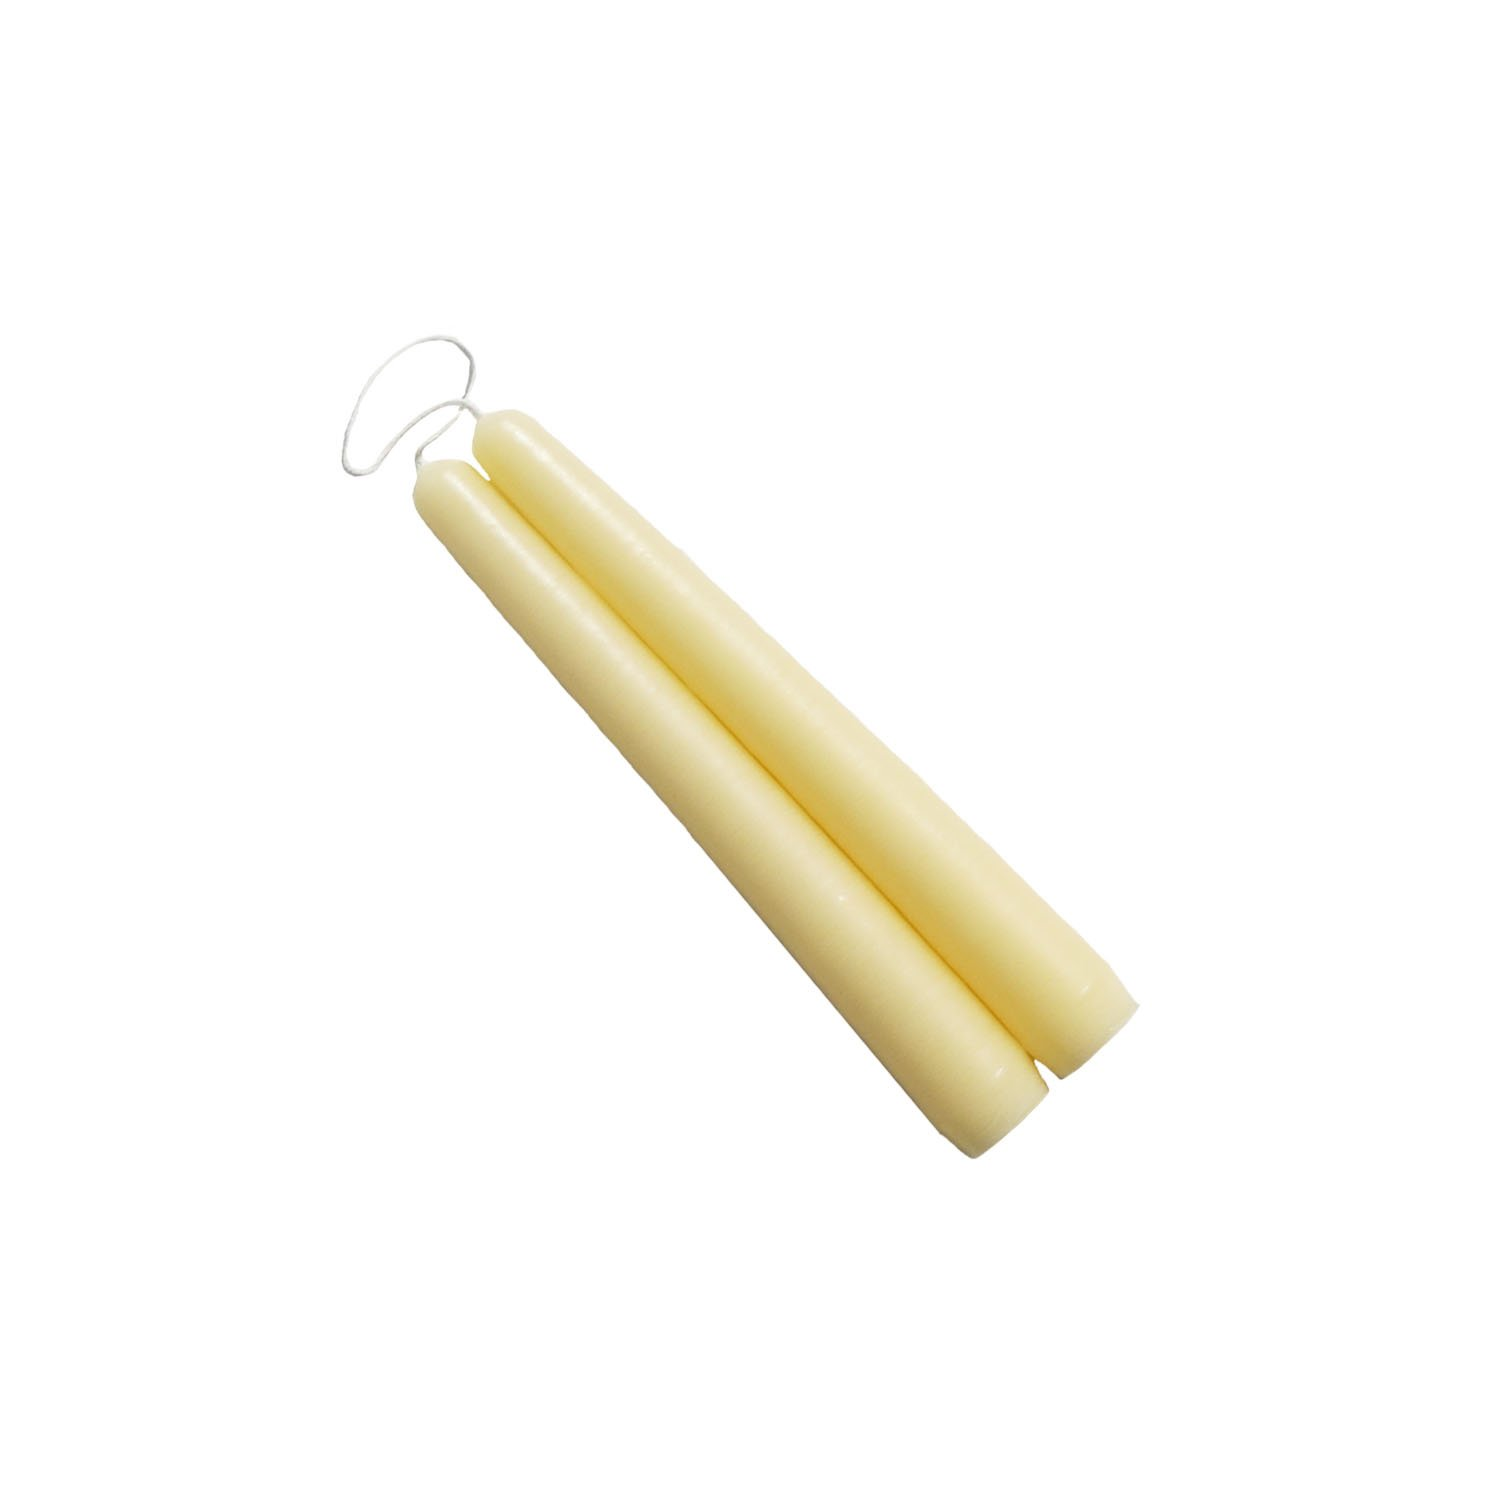 6 inch Parchment Mole Hollow Taper Candles (Set of 2)